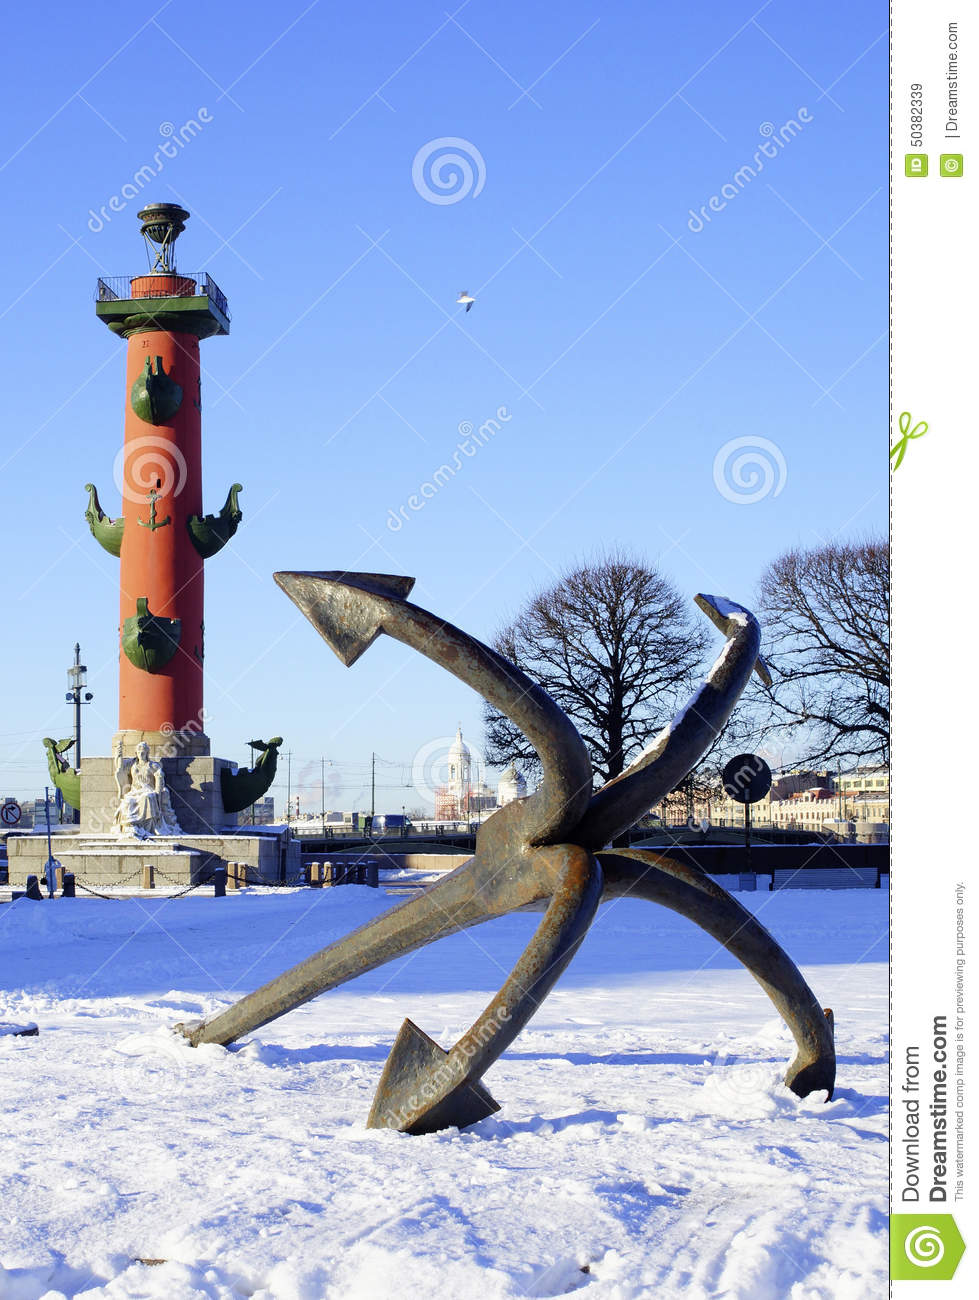 Ancient Anchor And Rostral Column In St.Petersburg, Russia Stock.